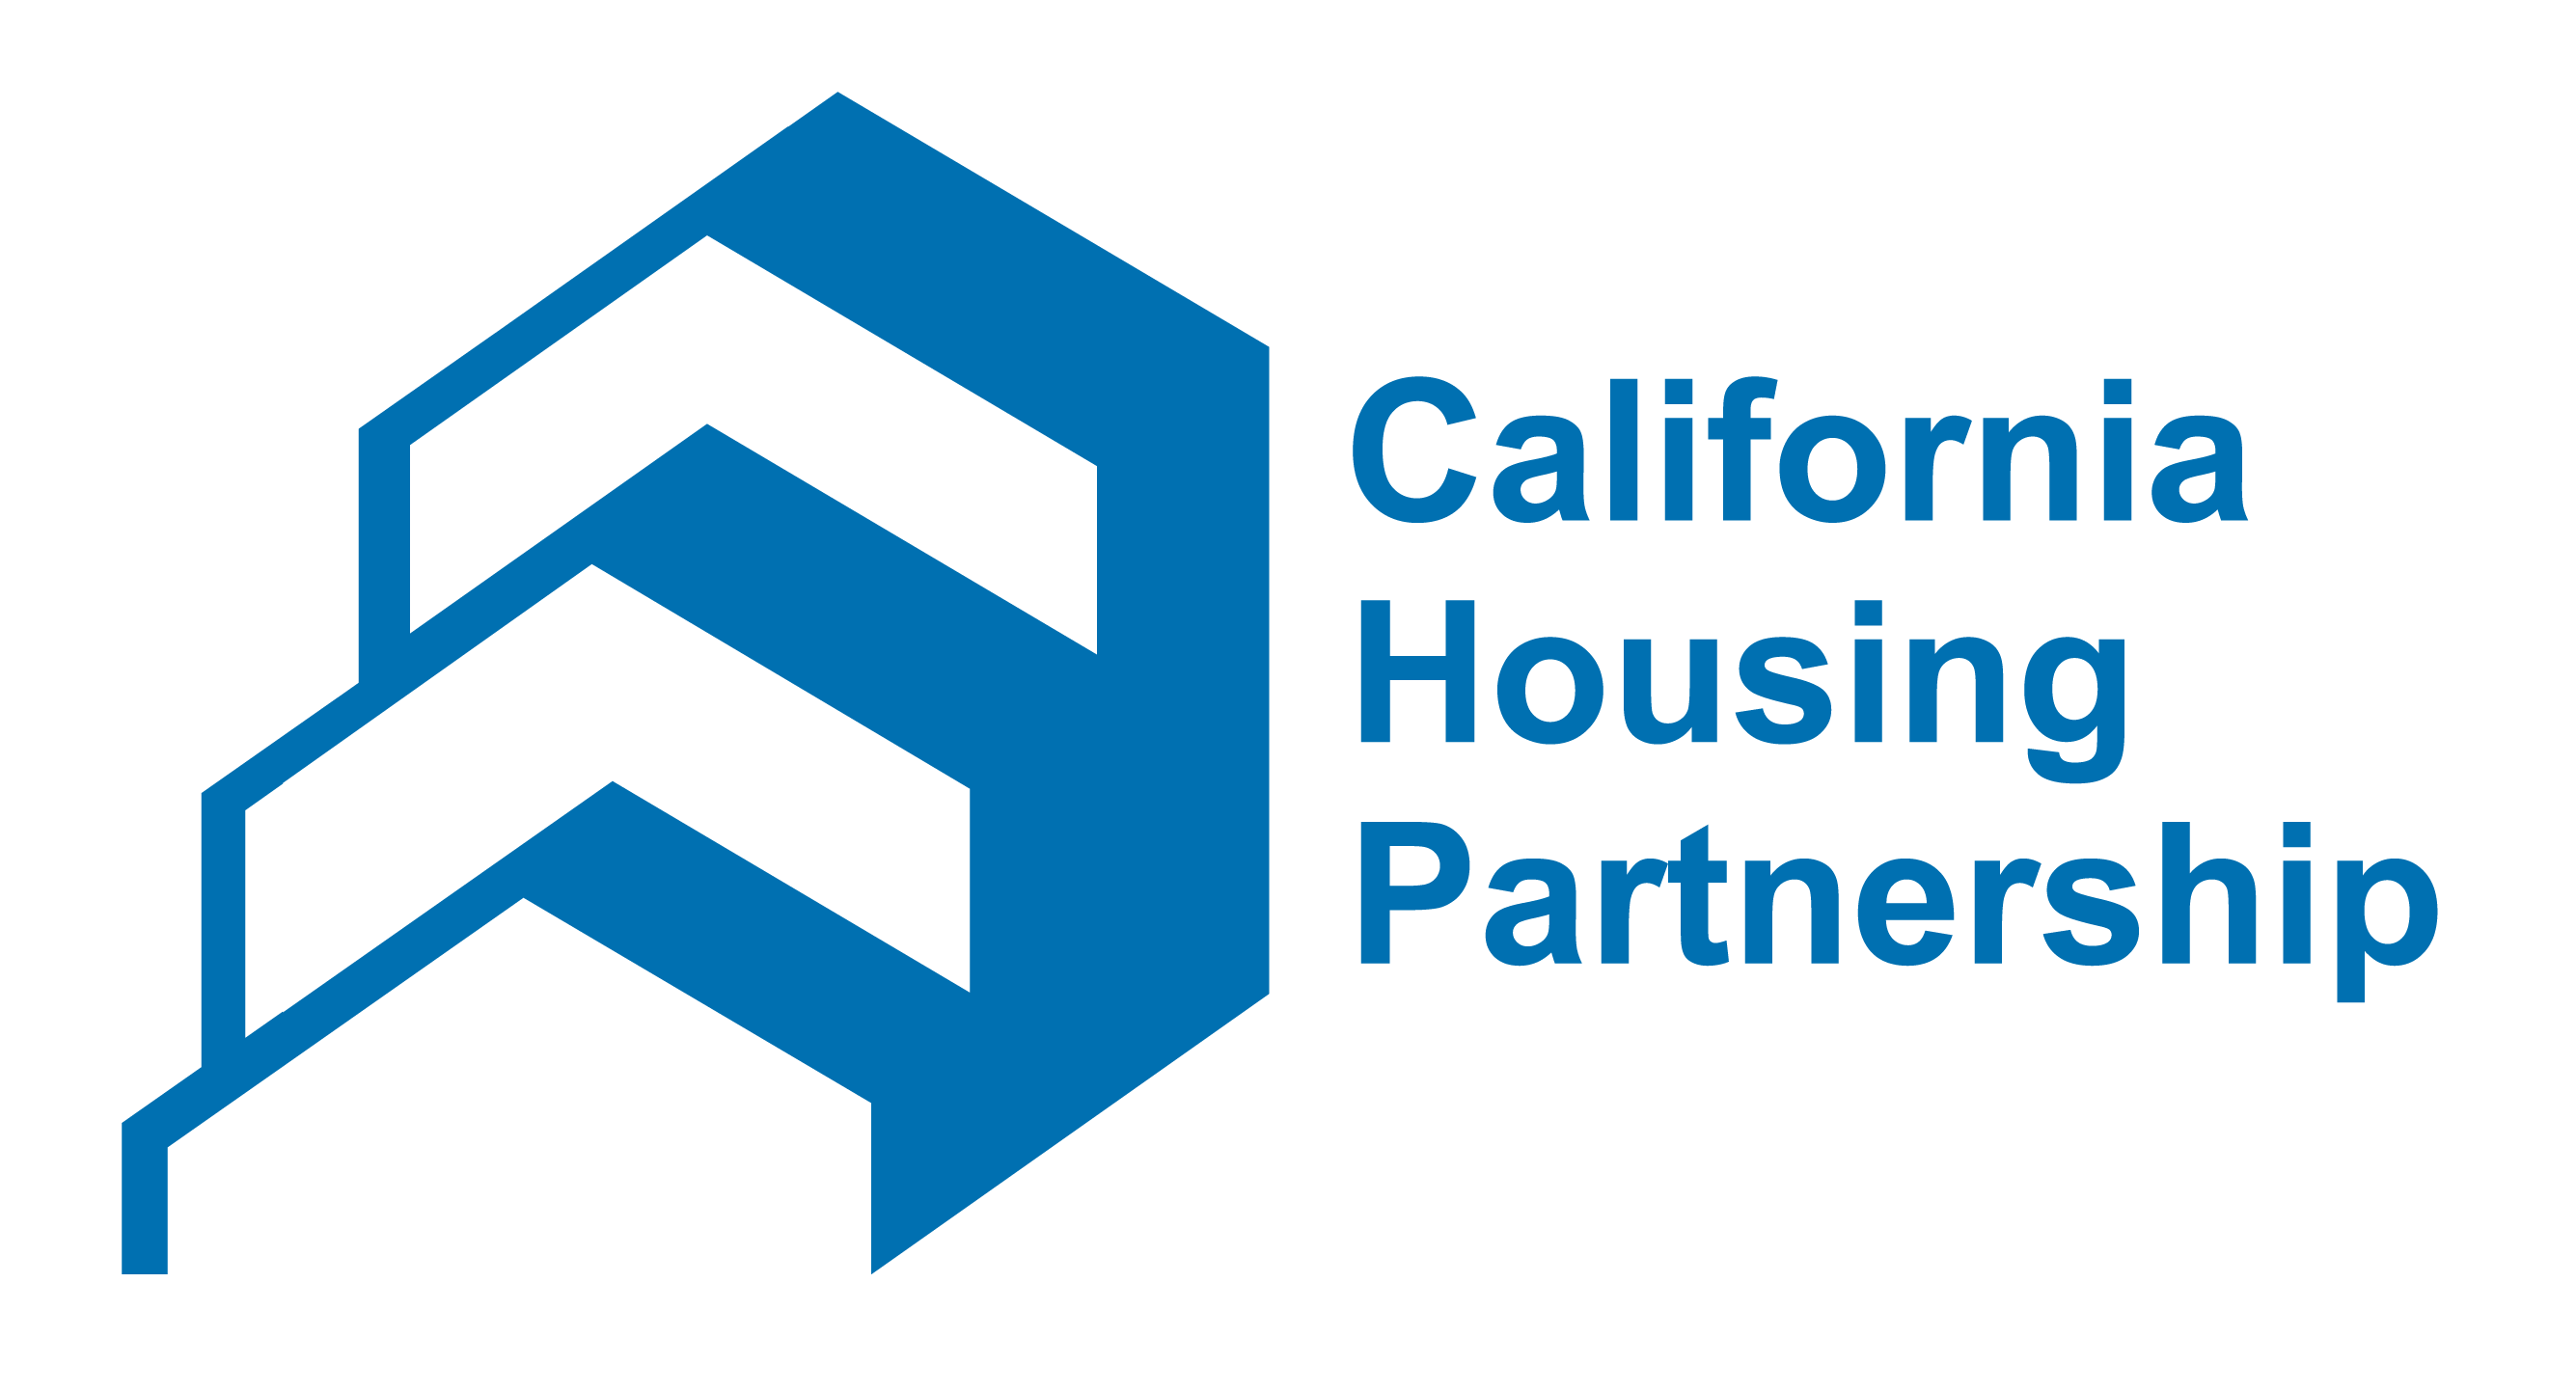 California Housing Partnership Logo